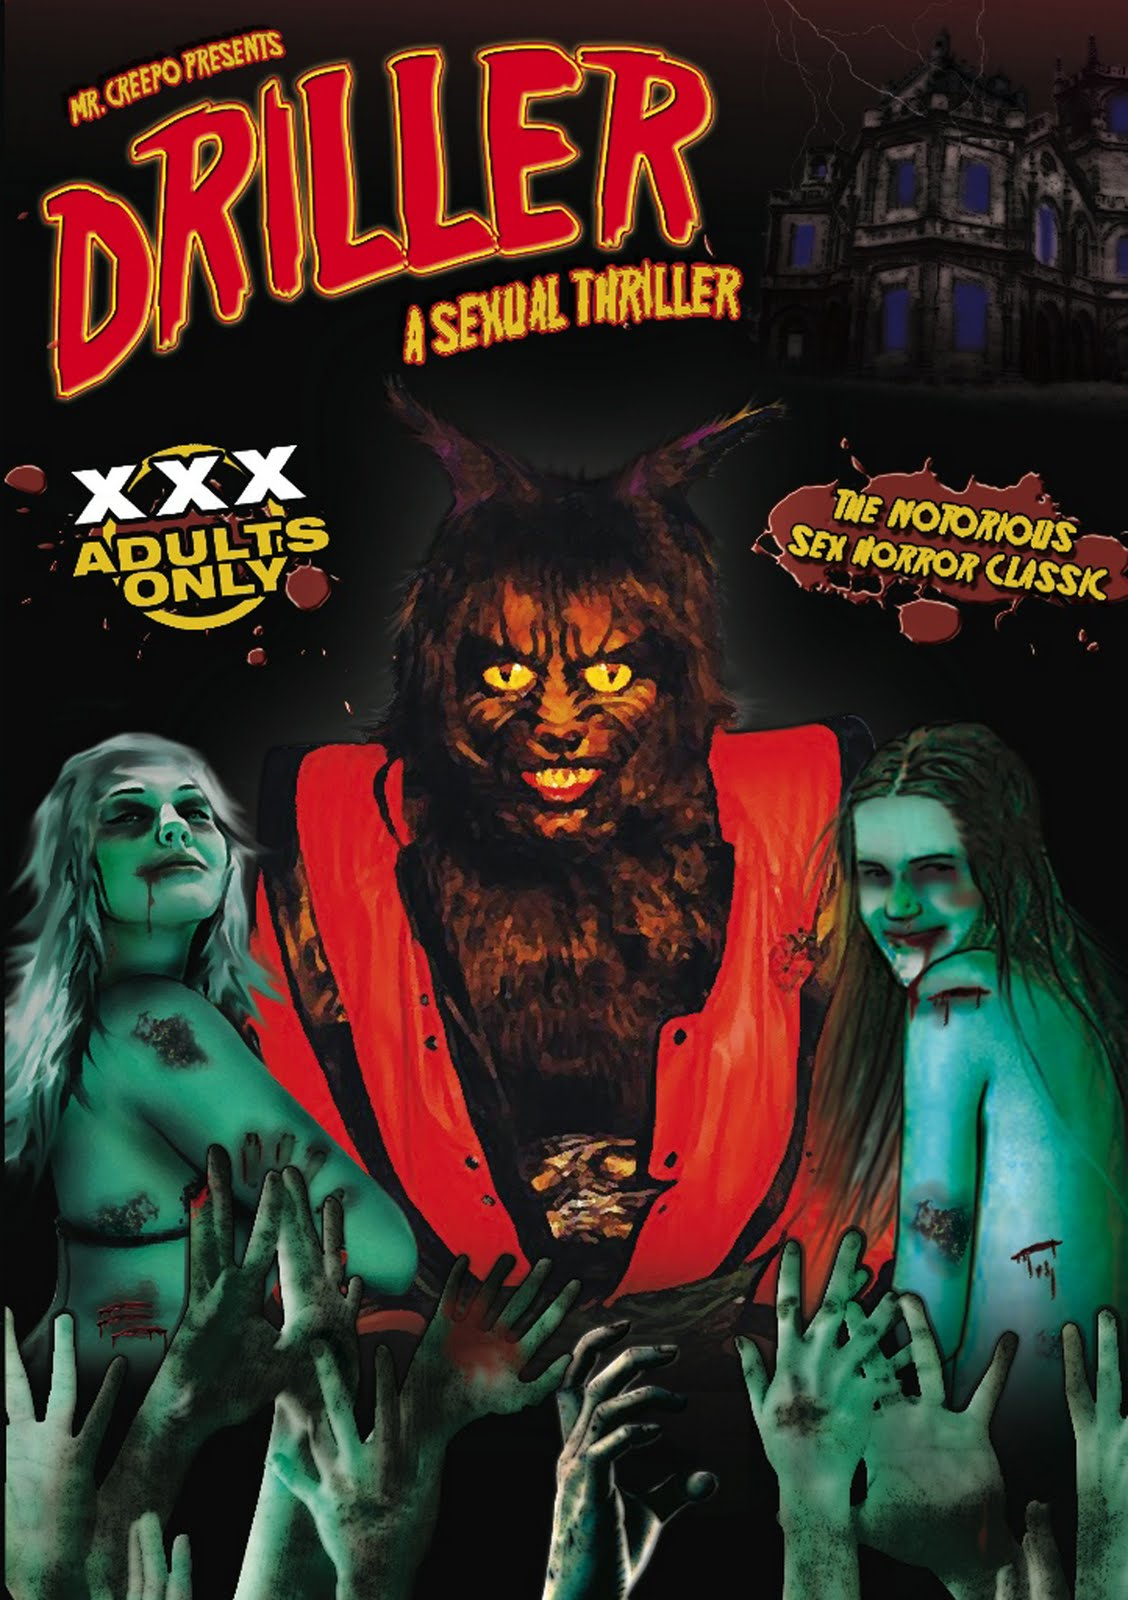 A depraved dungeon full of werewolves, zombies, mutants and hunchbacks ...